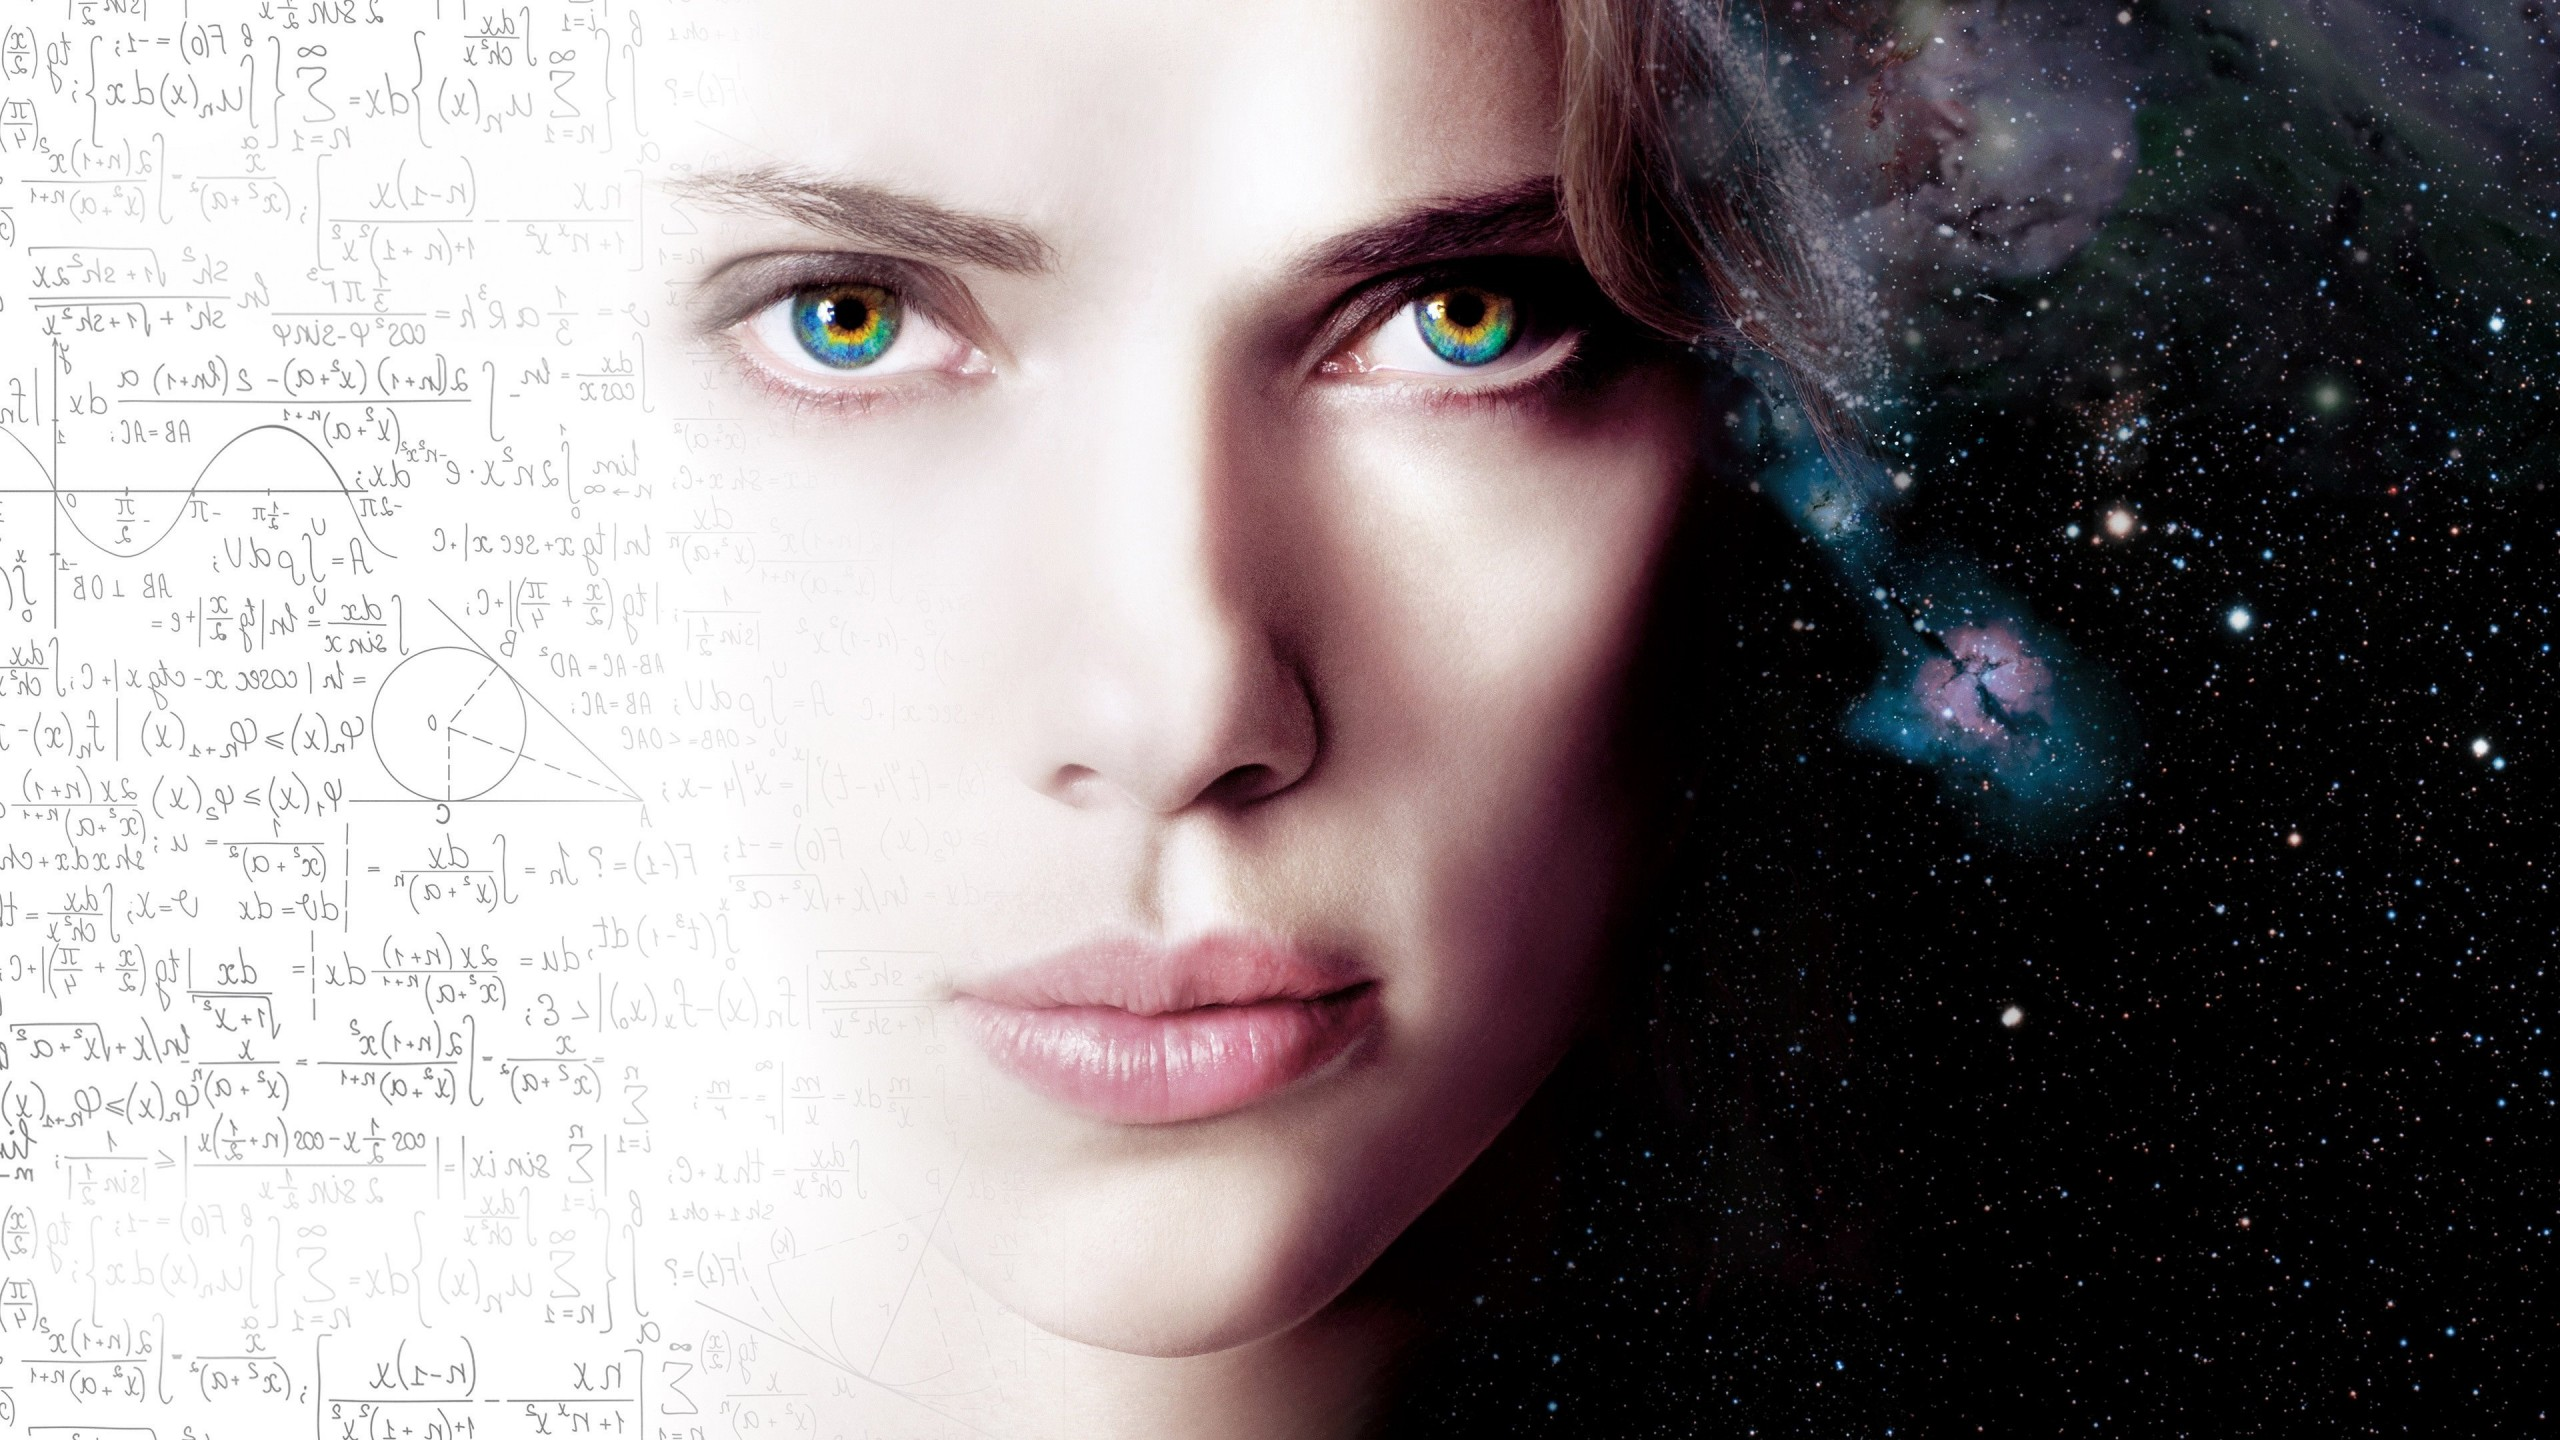 Scarlett Johansson As Lucy Wallpaper for Social Media YouTube Channel Art